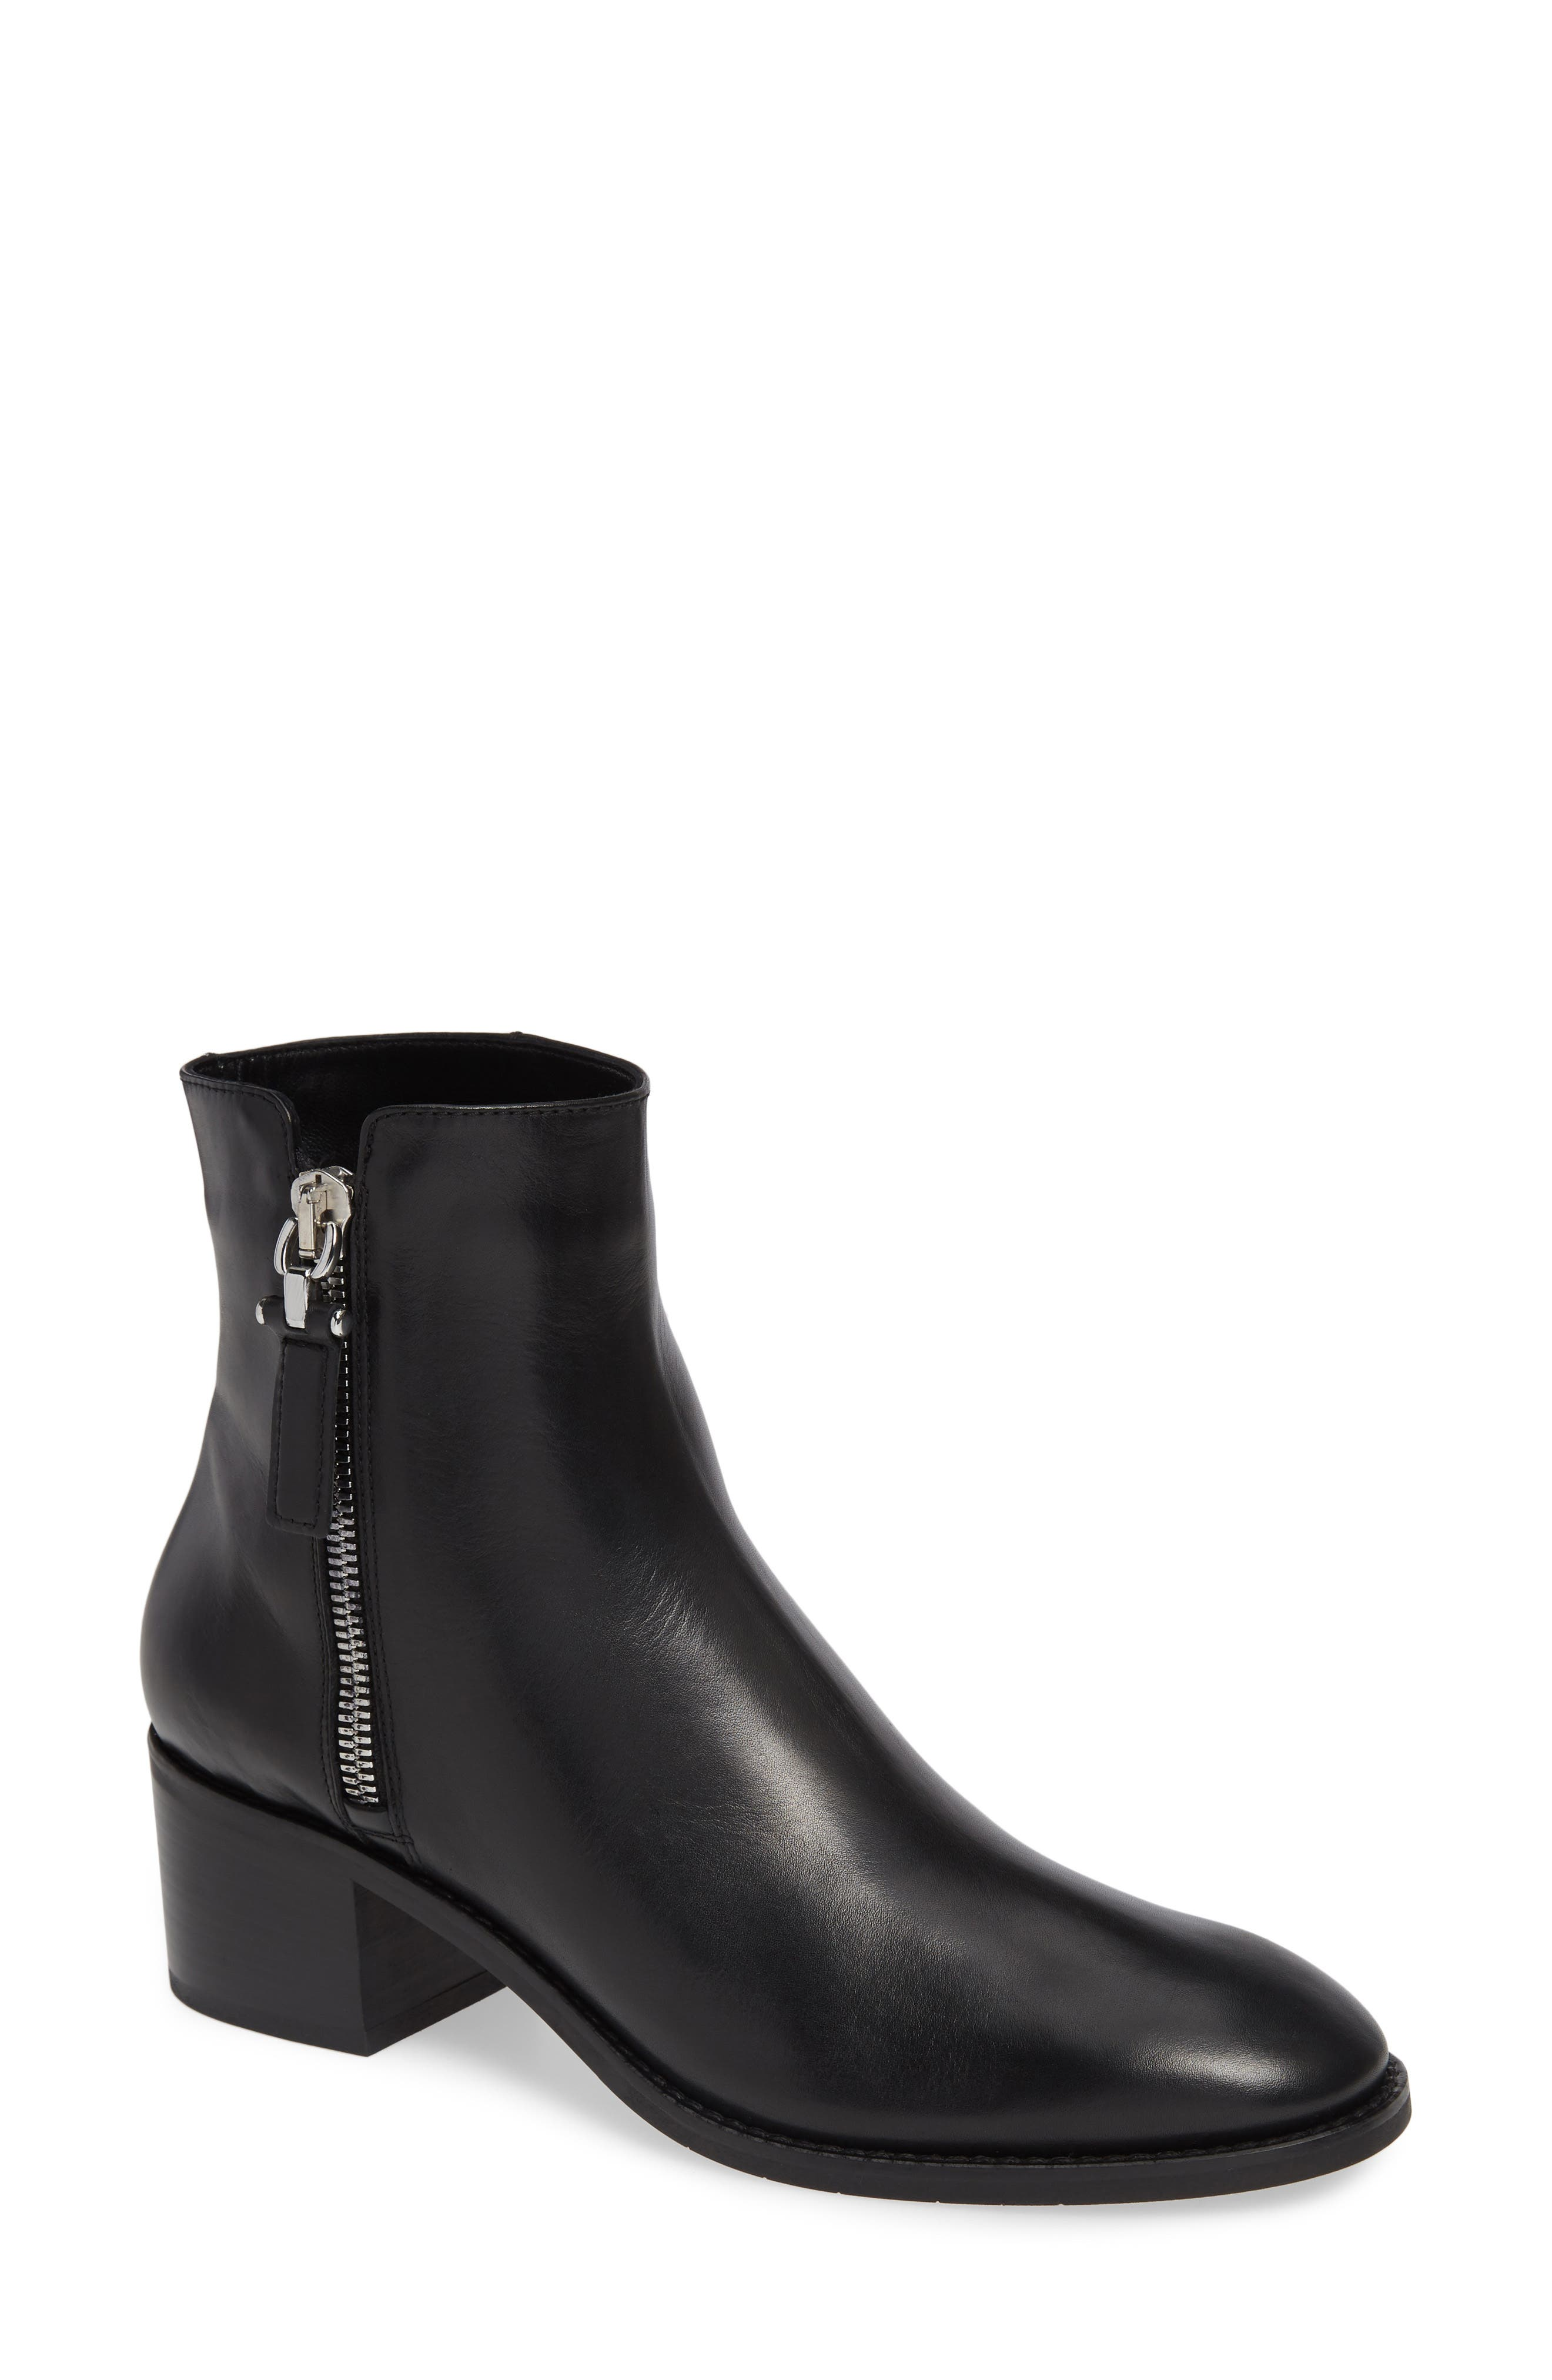 AQUATALIA Josephine Leather Ankle Boots in Black